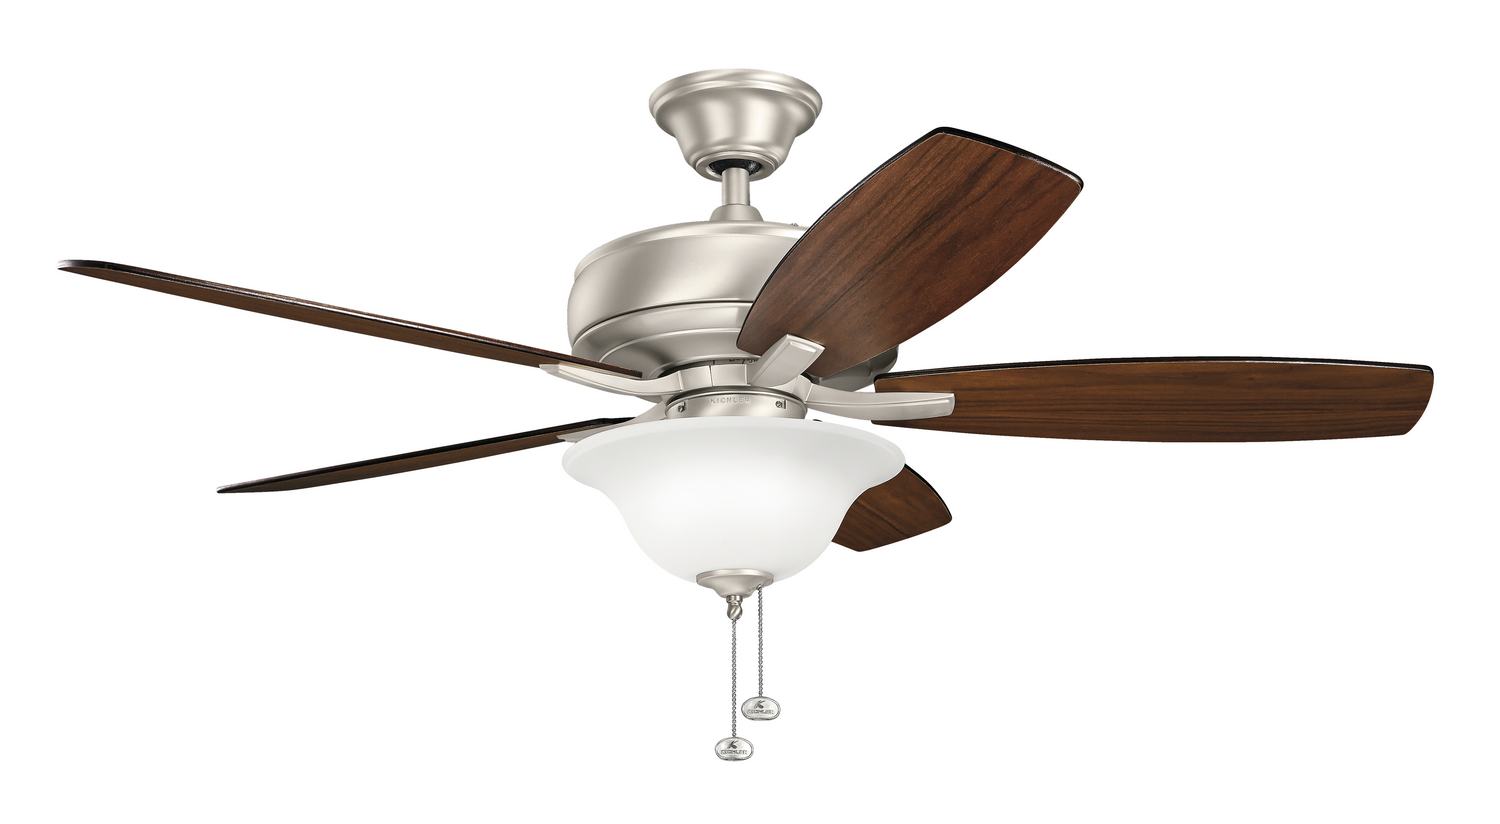 52 inchCeiling Fan from the Select collection by Kichler 330248NI